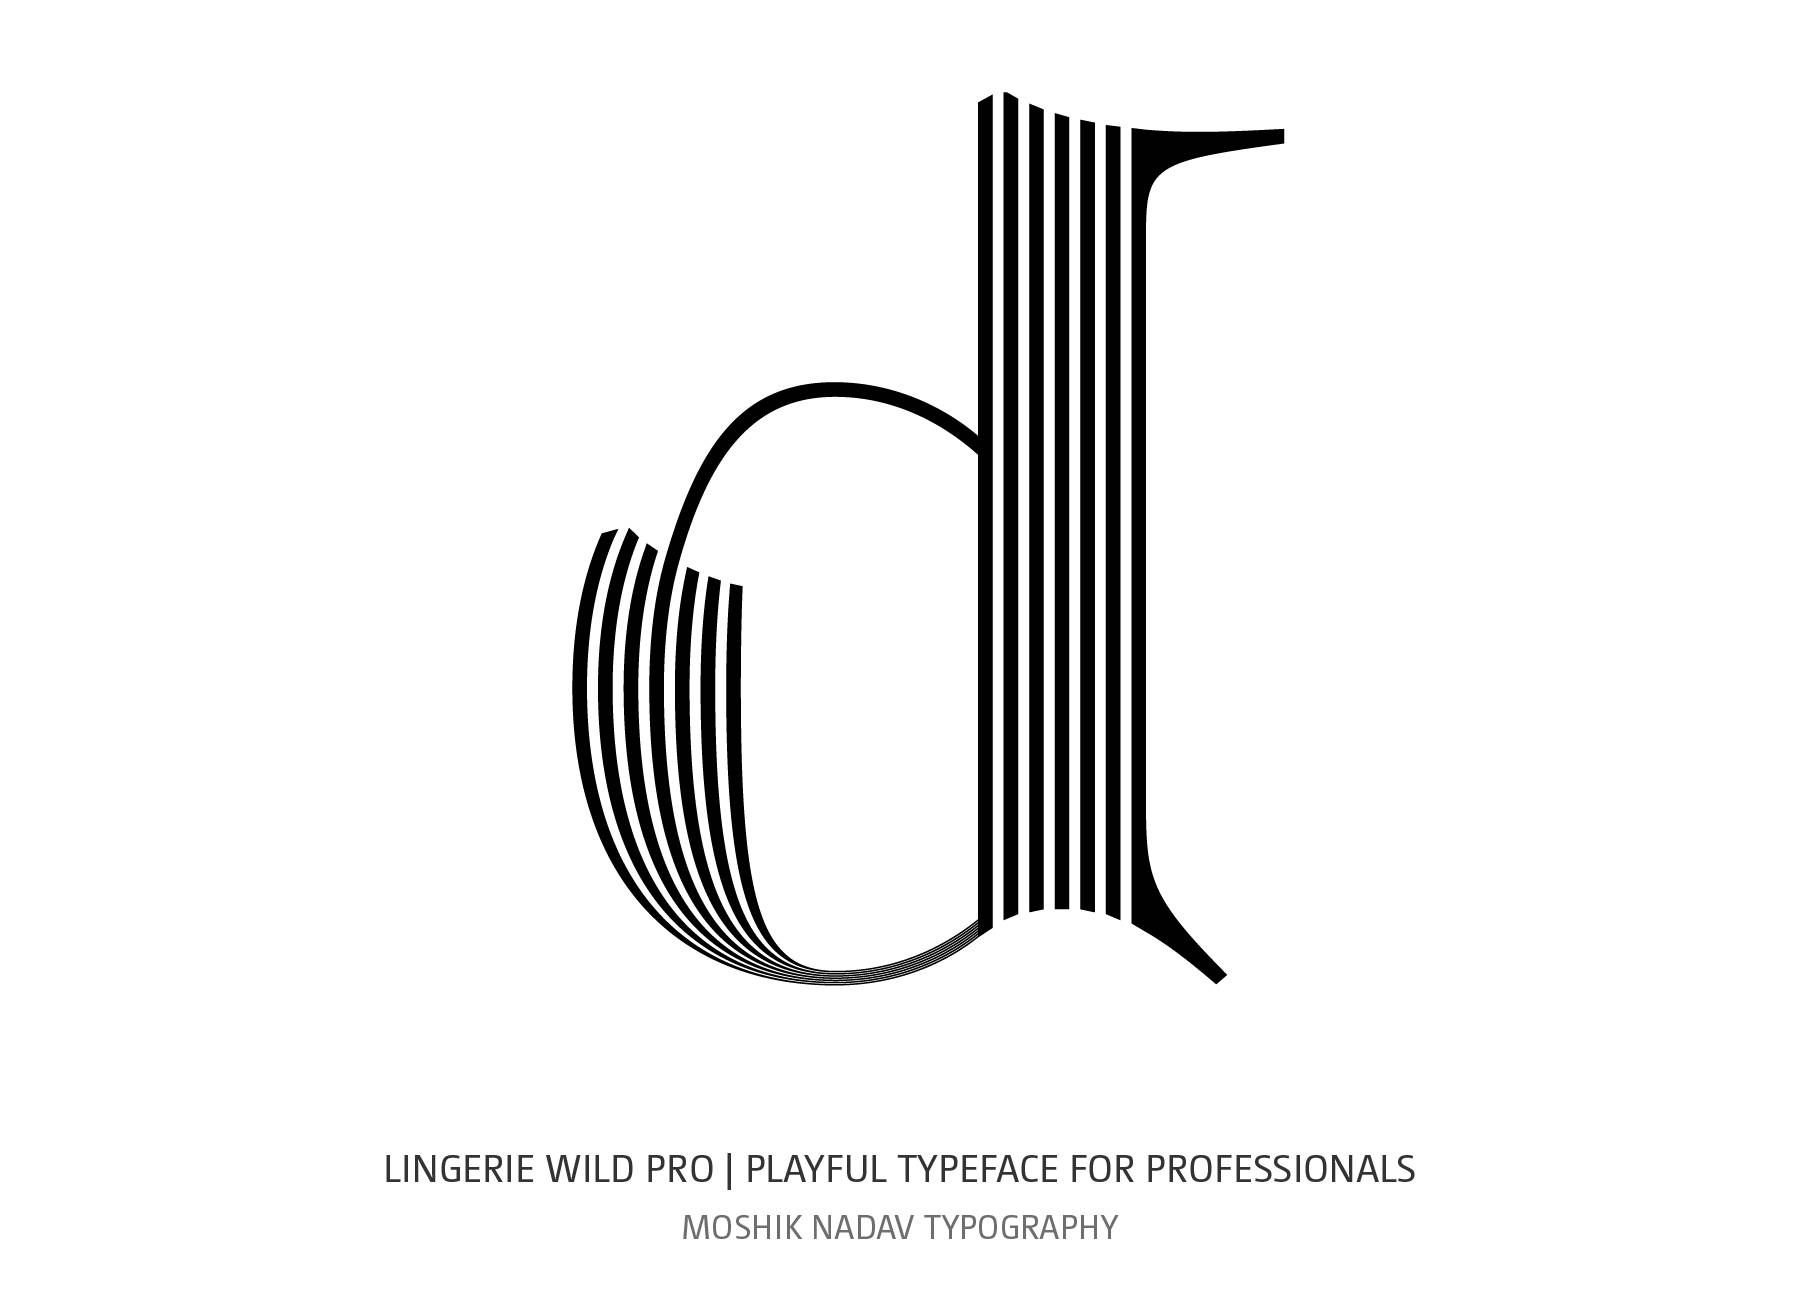 Lingerie Wild Pro Typeface lowercase d designed for fashion logos and luxury bbrands